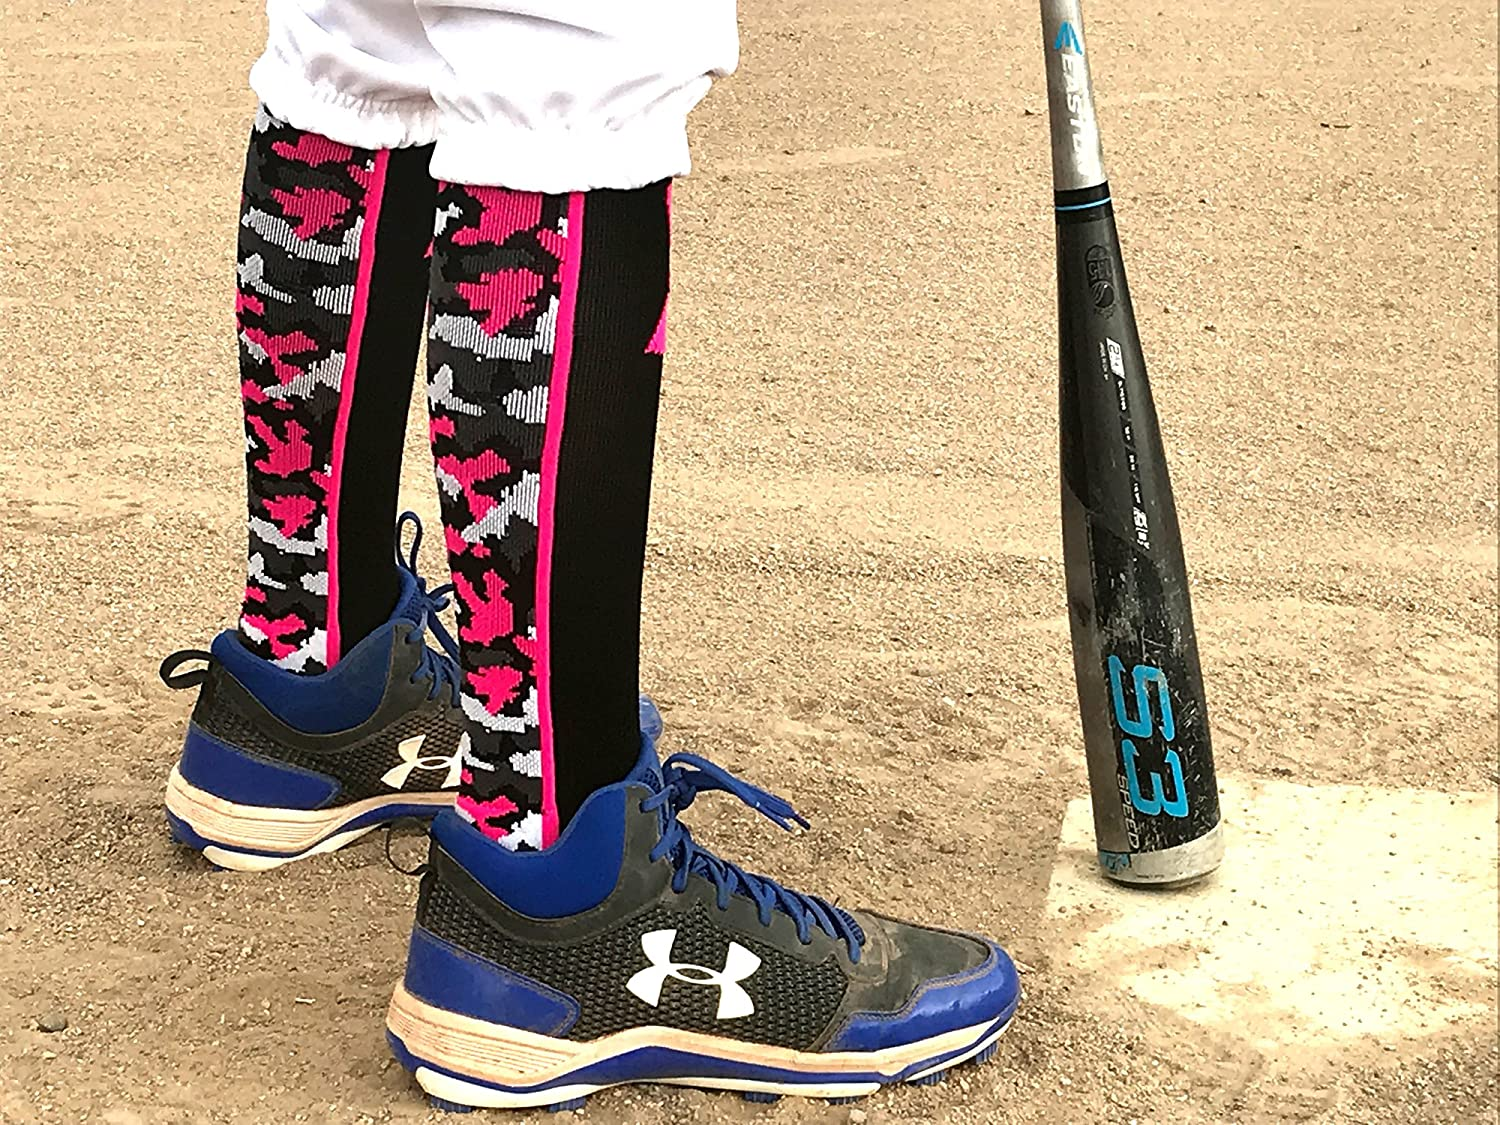 MadSportsStuff Pink Ribbon Breast Cancer Awareness Camo Over The Calf Socks (Multiple Colors)